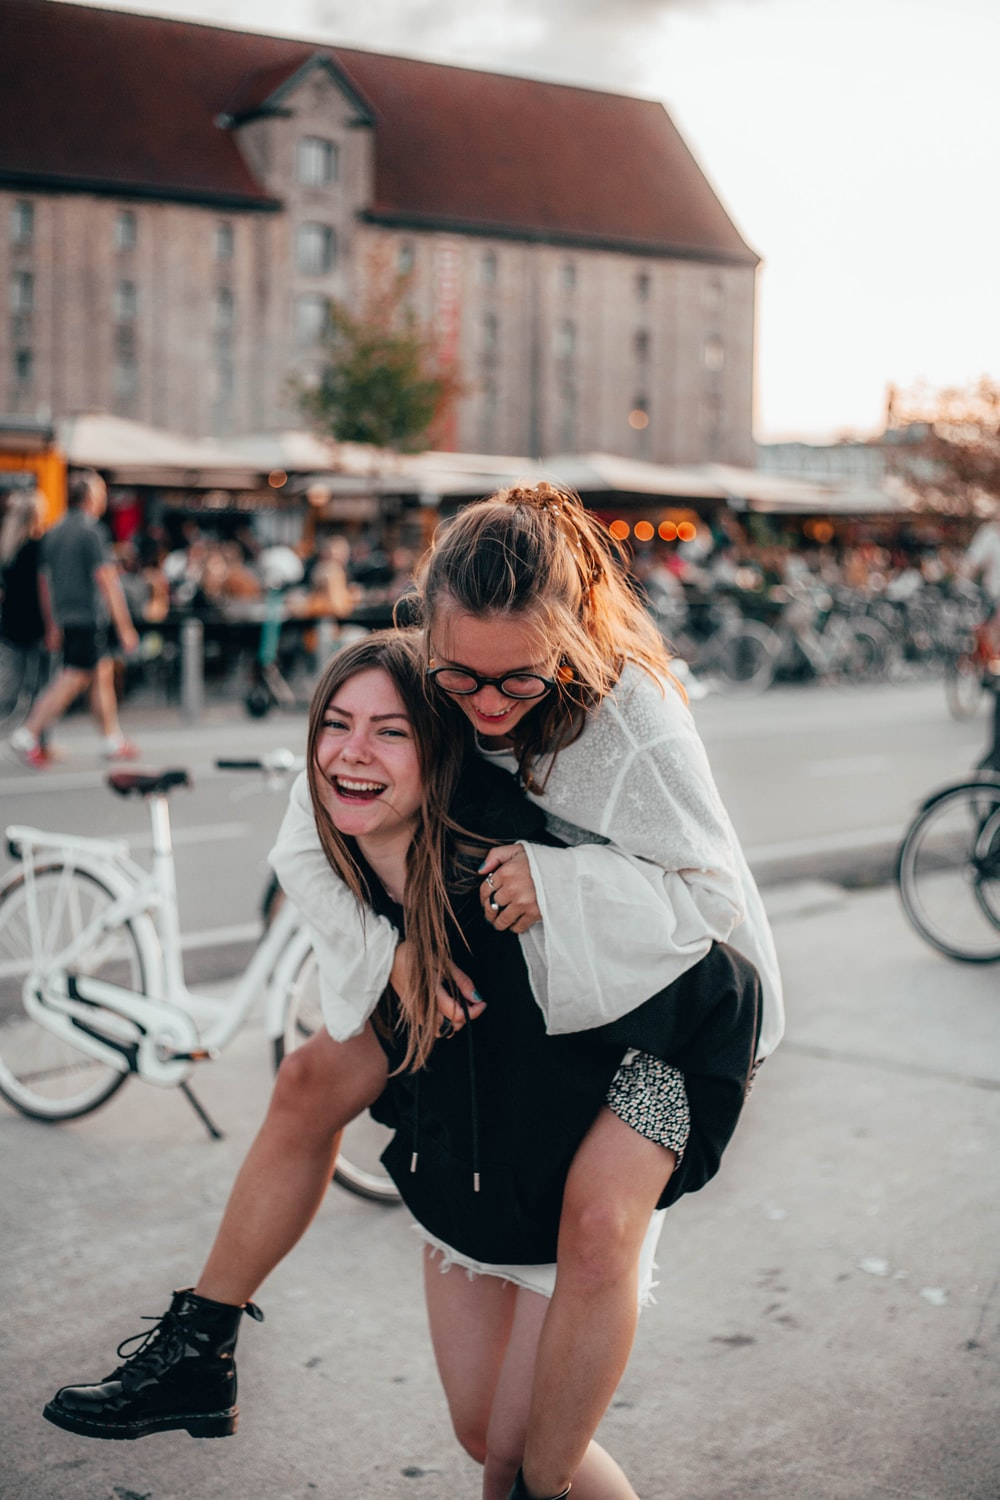 woman piggy back riding another woman